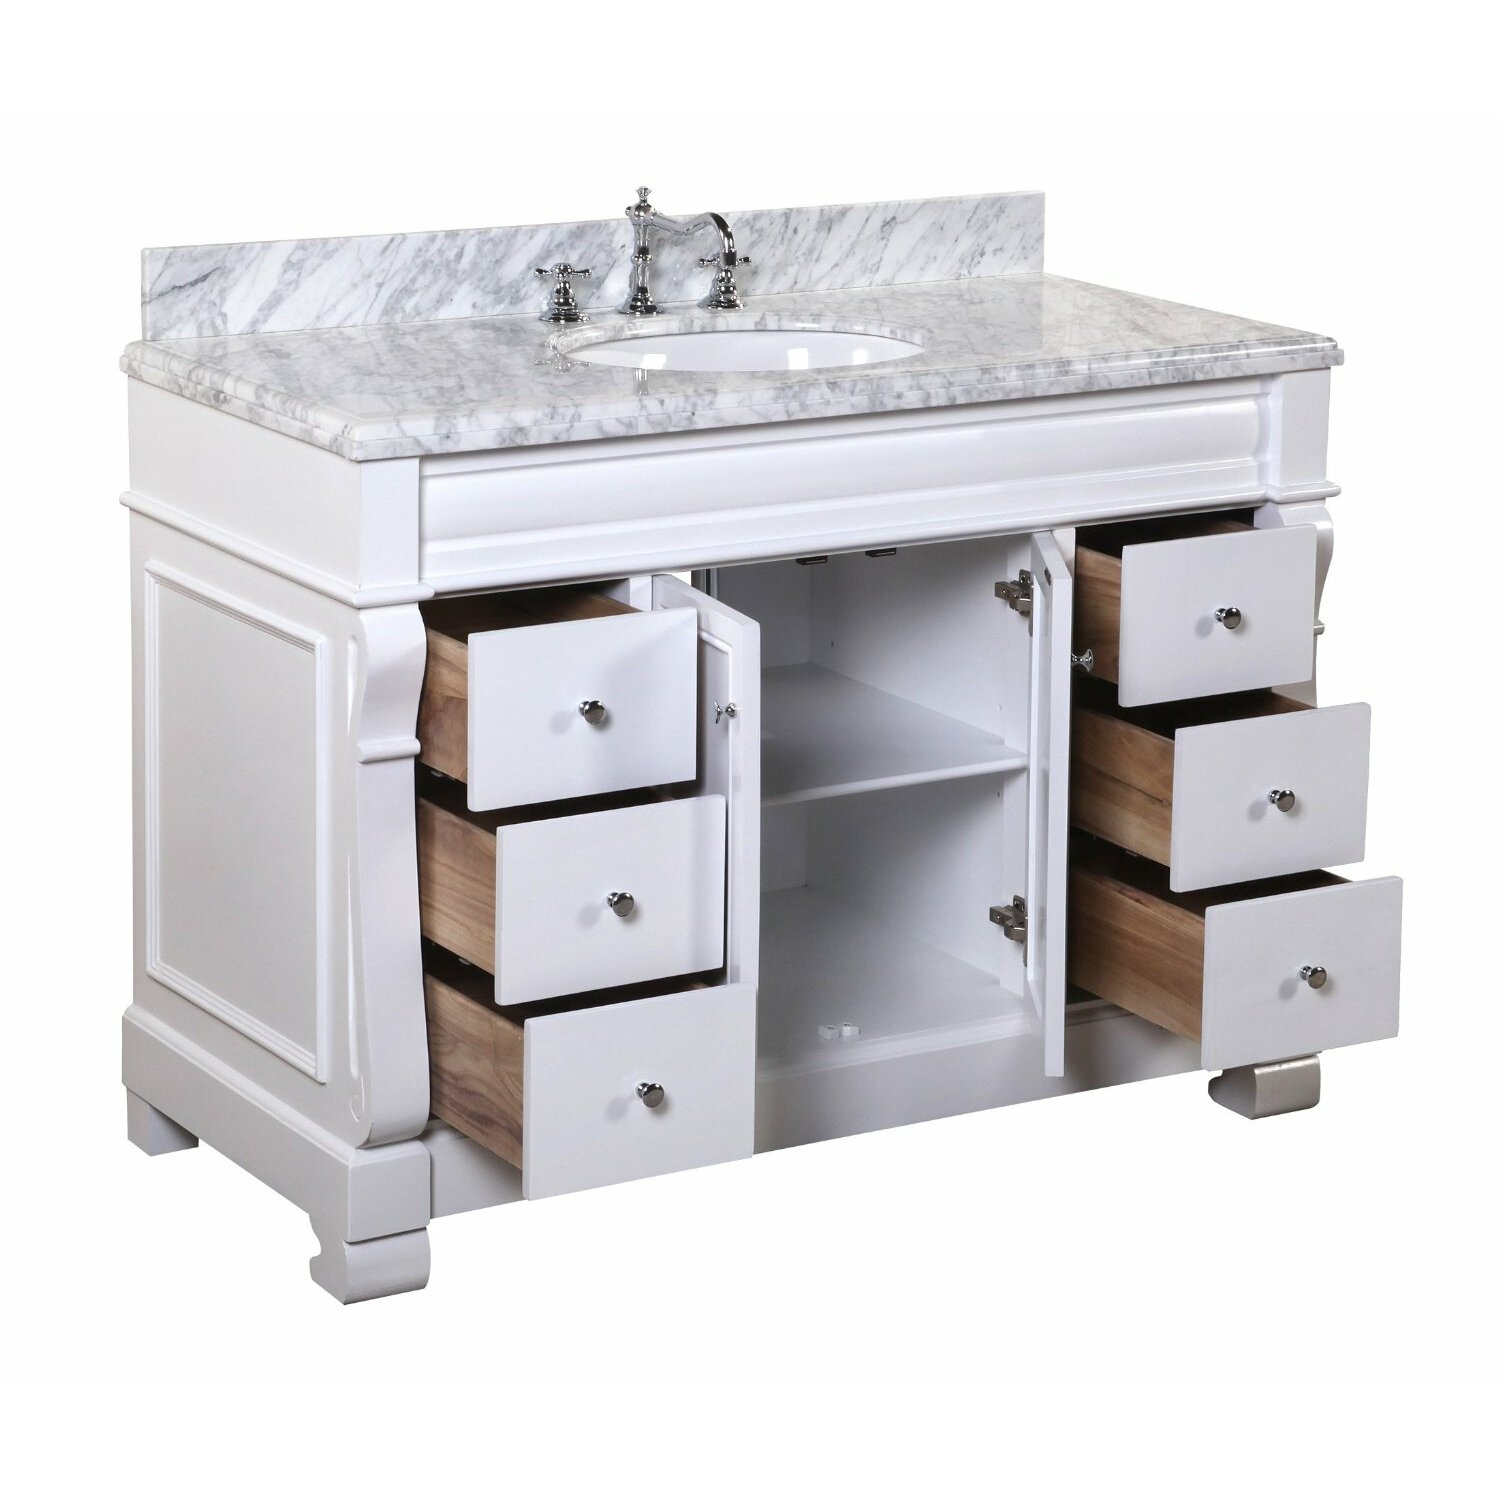 Kbc Westminster 48 Single Bathroom Vanity Set Reviews Wayfair